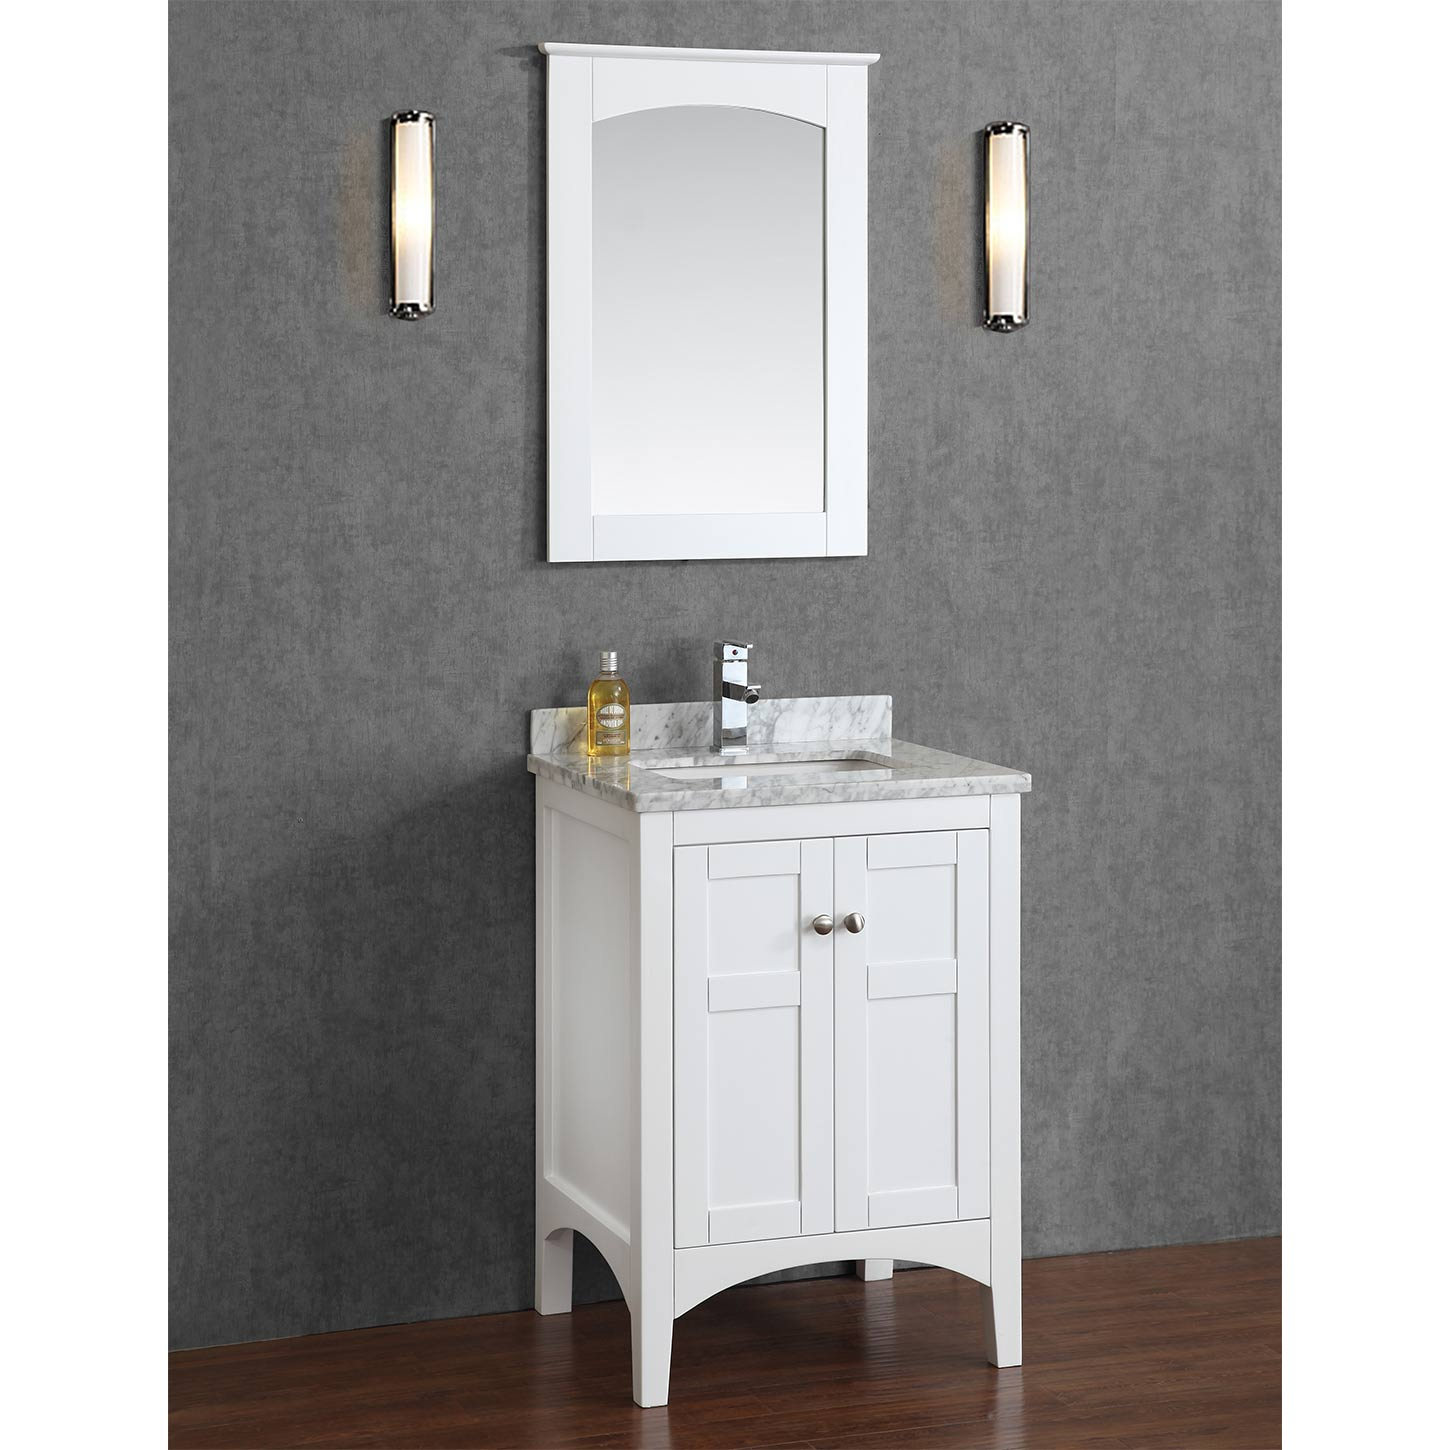 Buy Martin 24 Solid Wood Single Bathroom Vanity In White Hm 001 24 Wmsq Wt